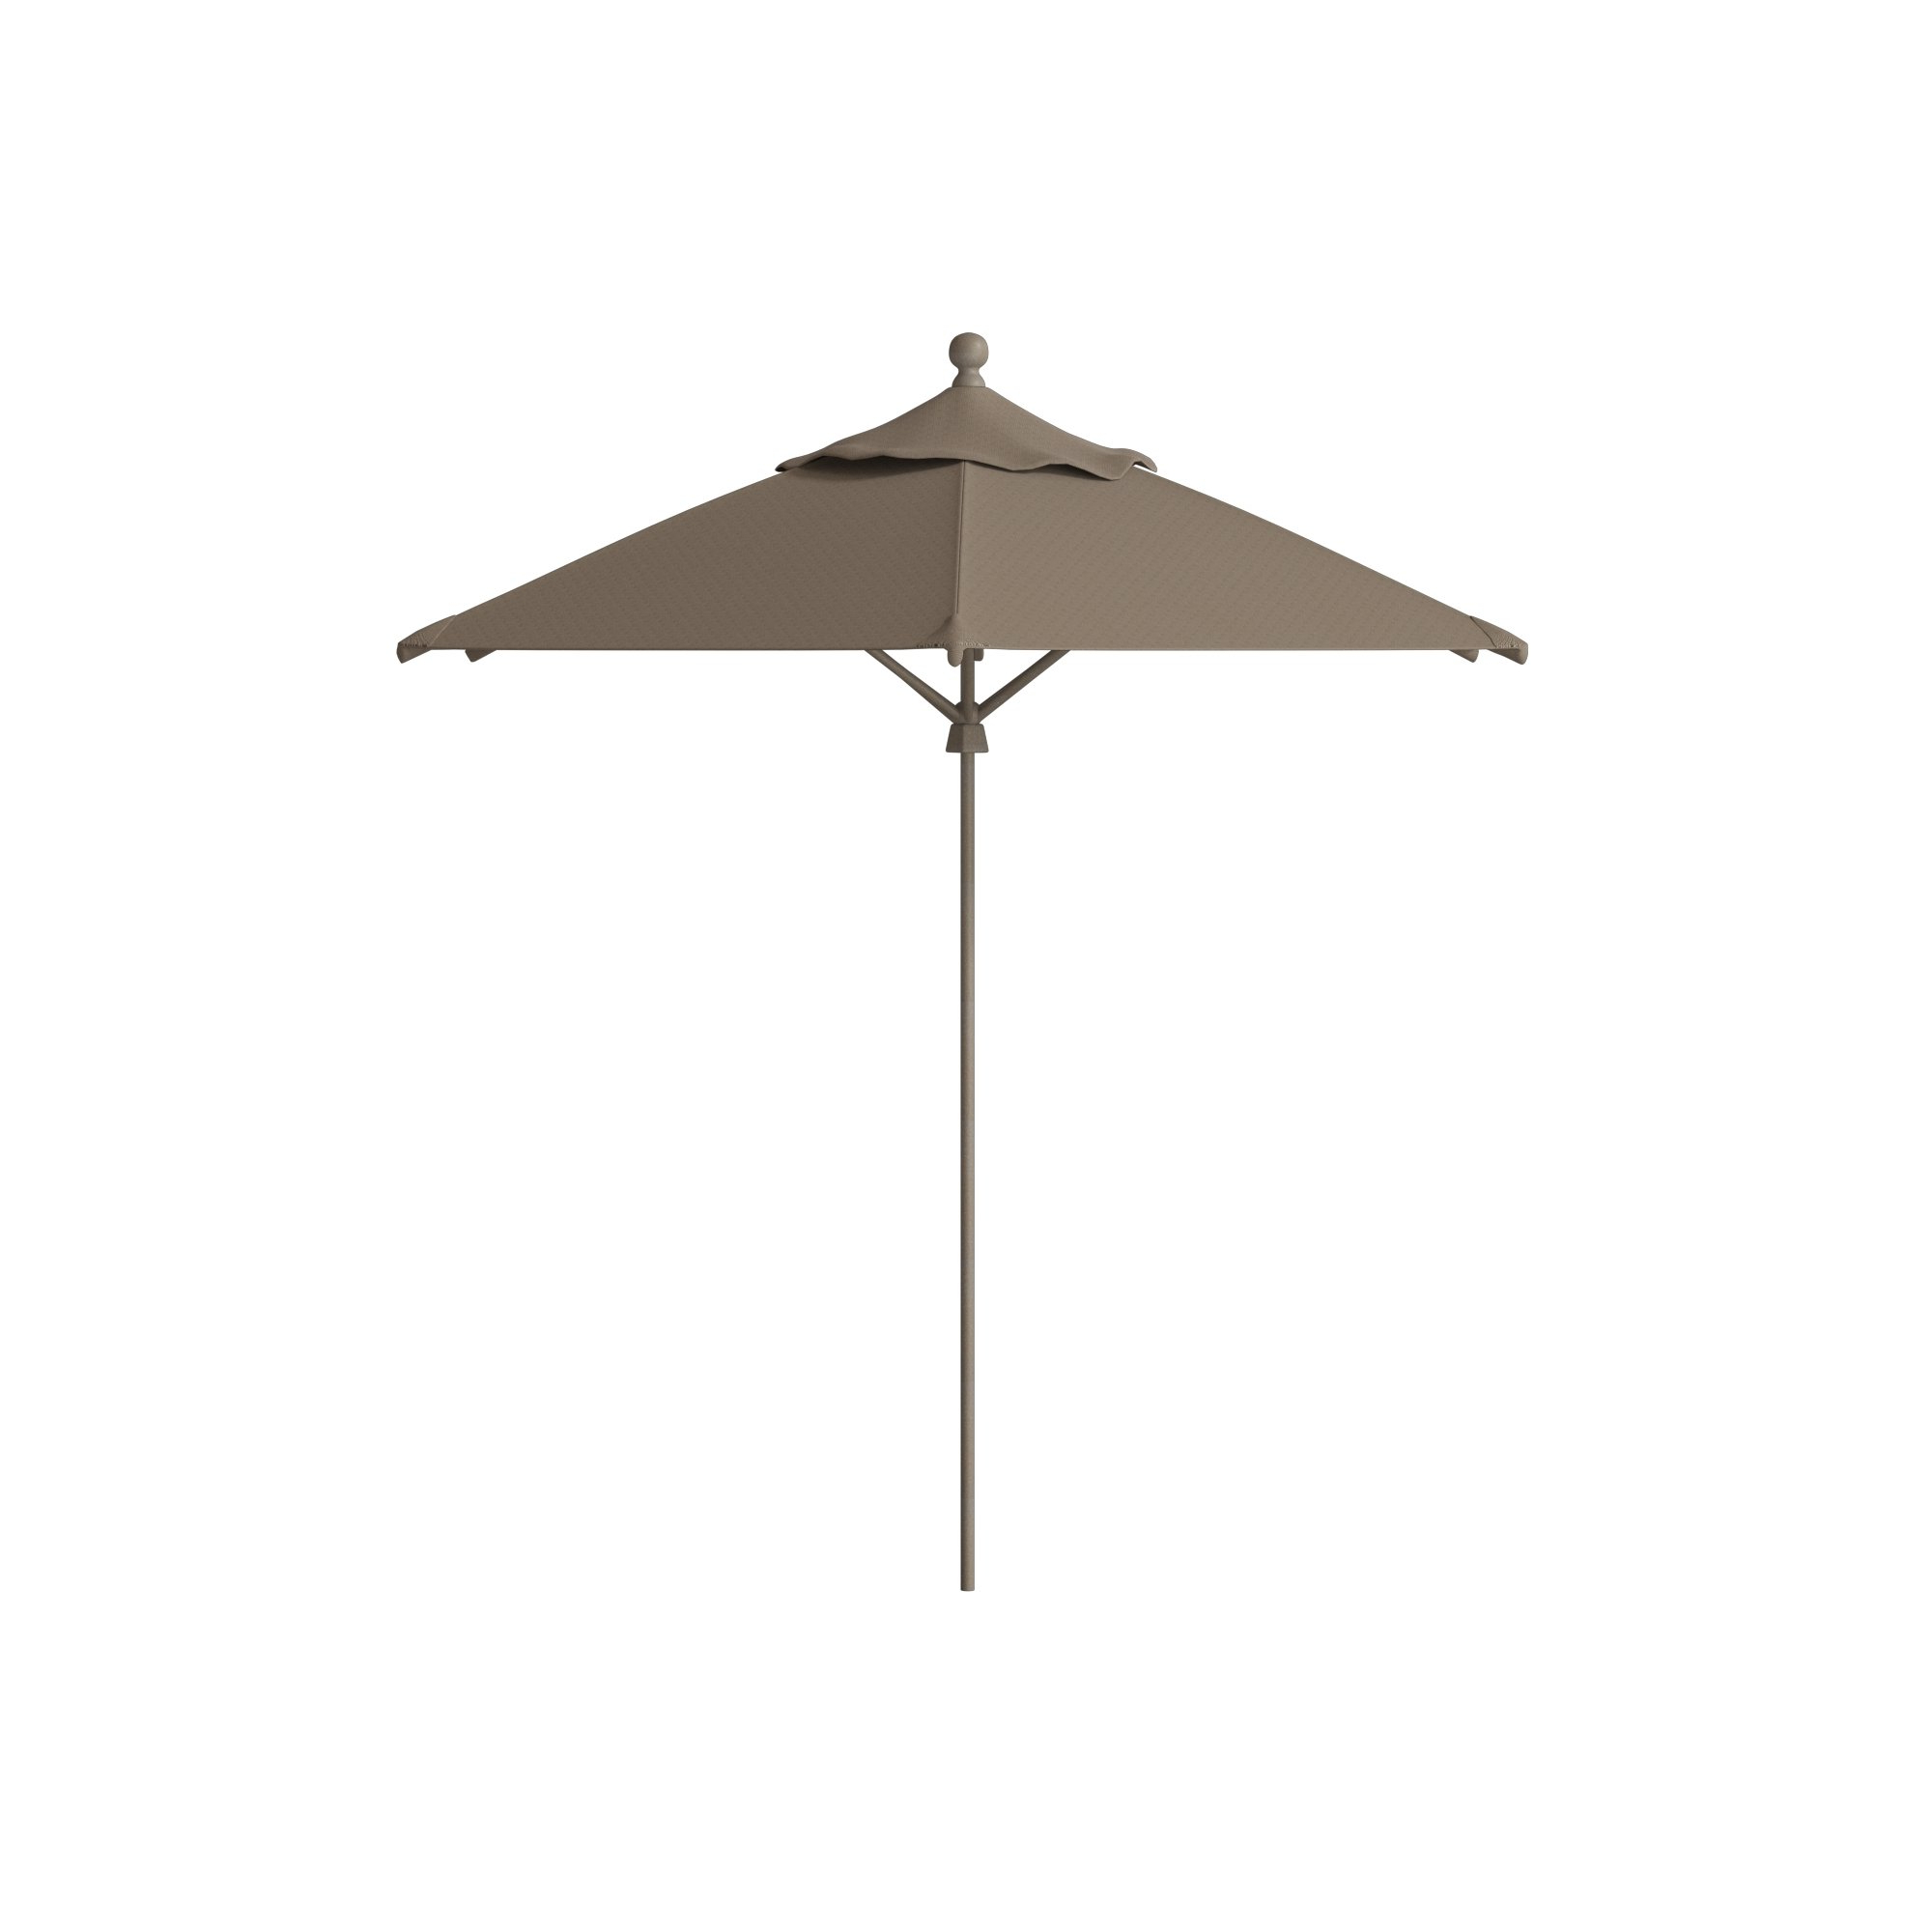 Portofino 8' Market Umbrella Pertaining To Widely Used Caravelle Market Umbrellas (View 11 of 20)